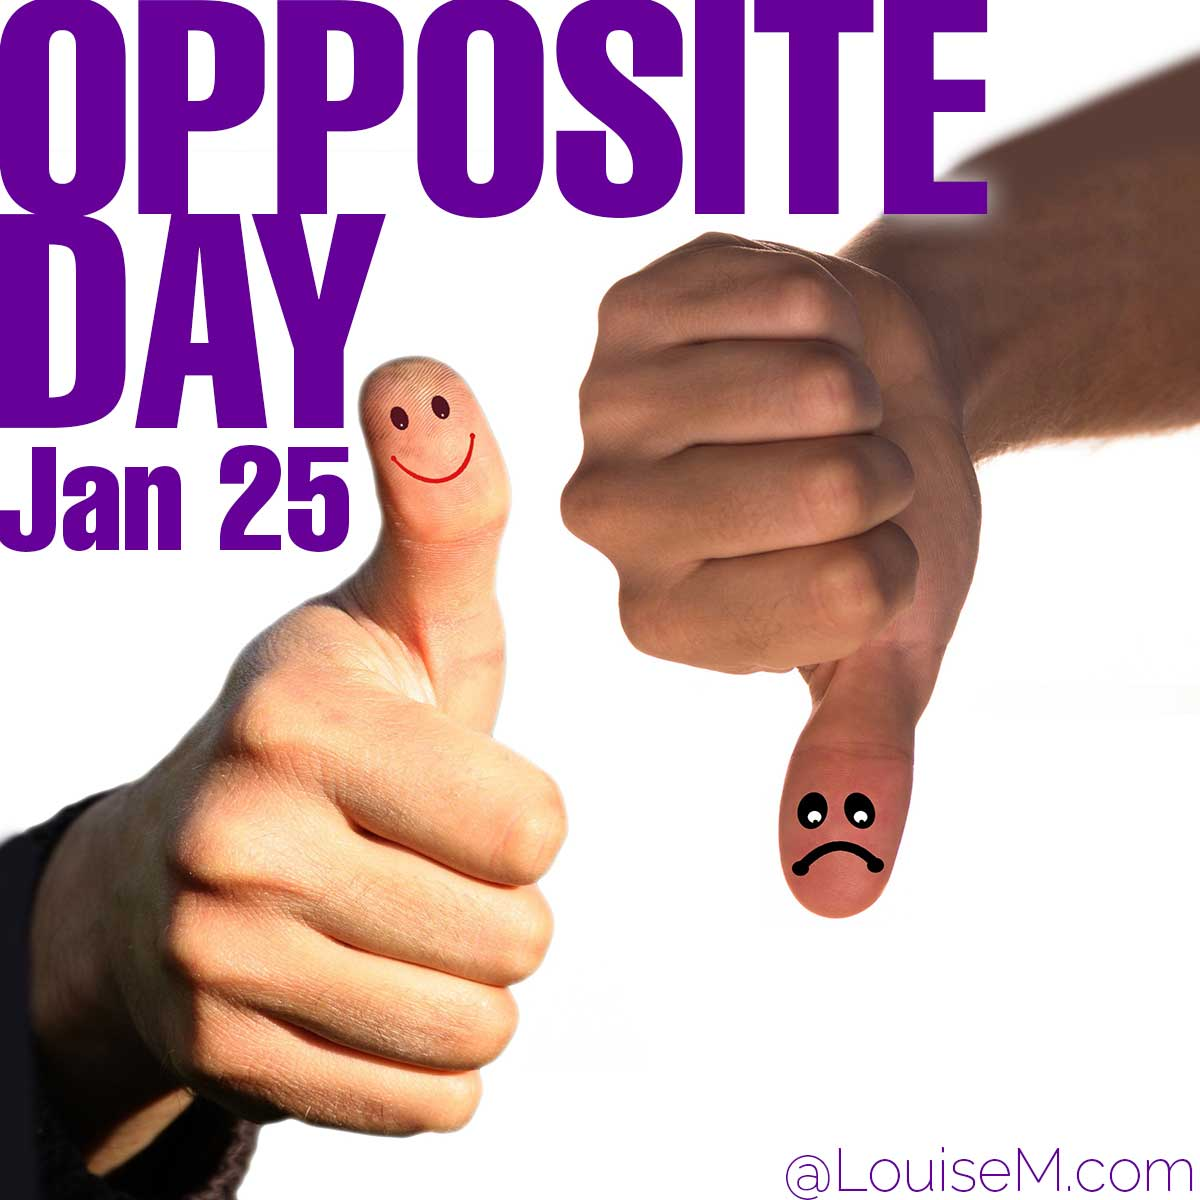 Opposite Day text over thumbs up and thumbs down photos.